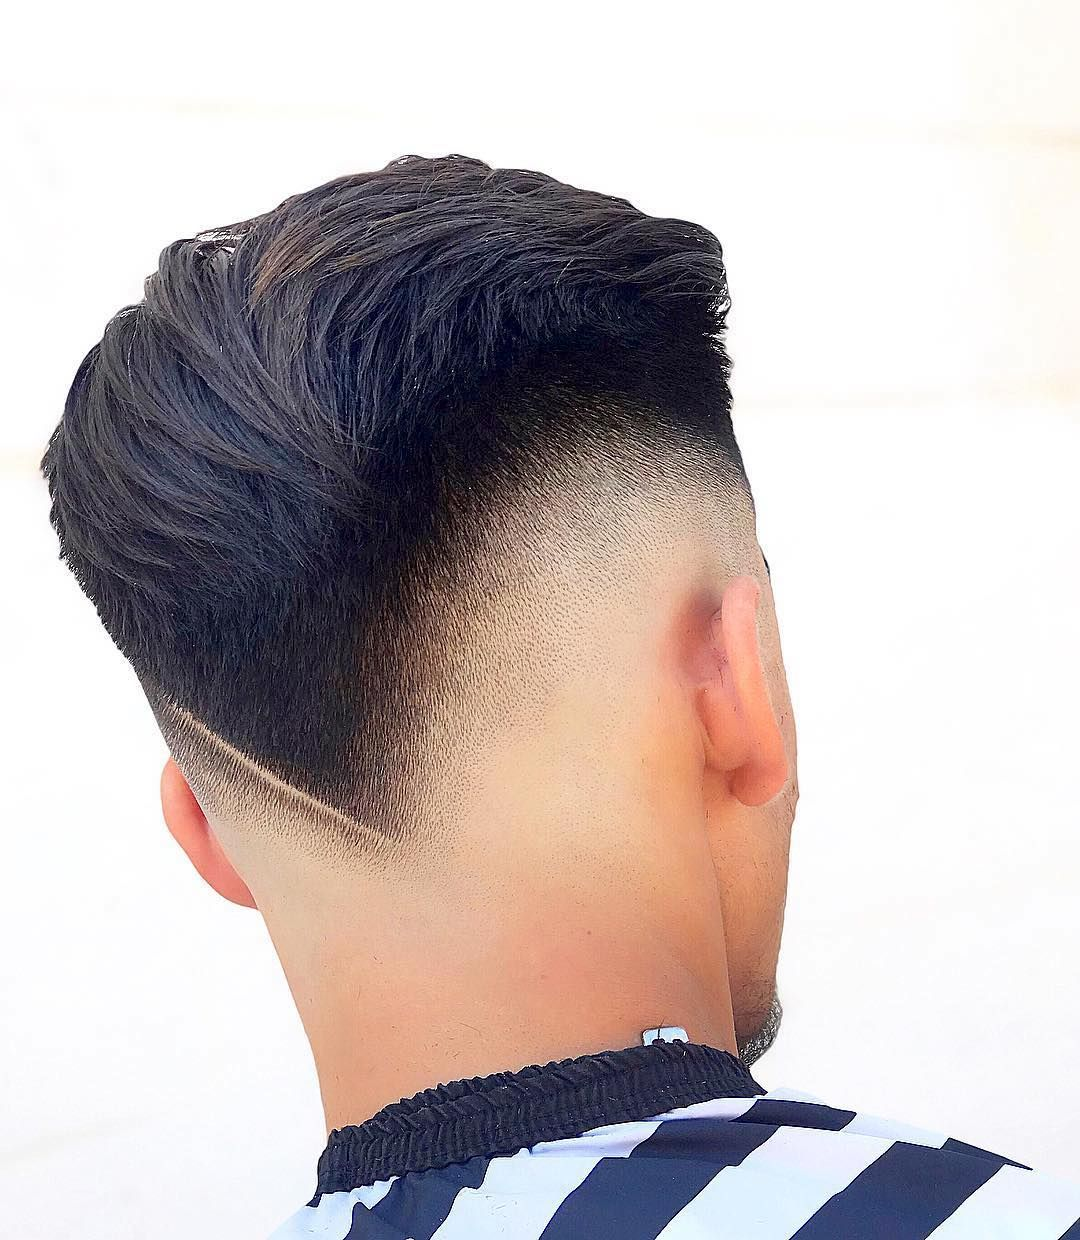 35+ Best Men's Hairstyles -> Cool New Looks For 2020